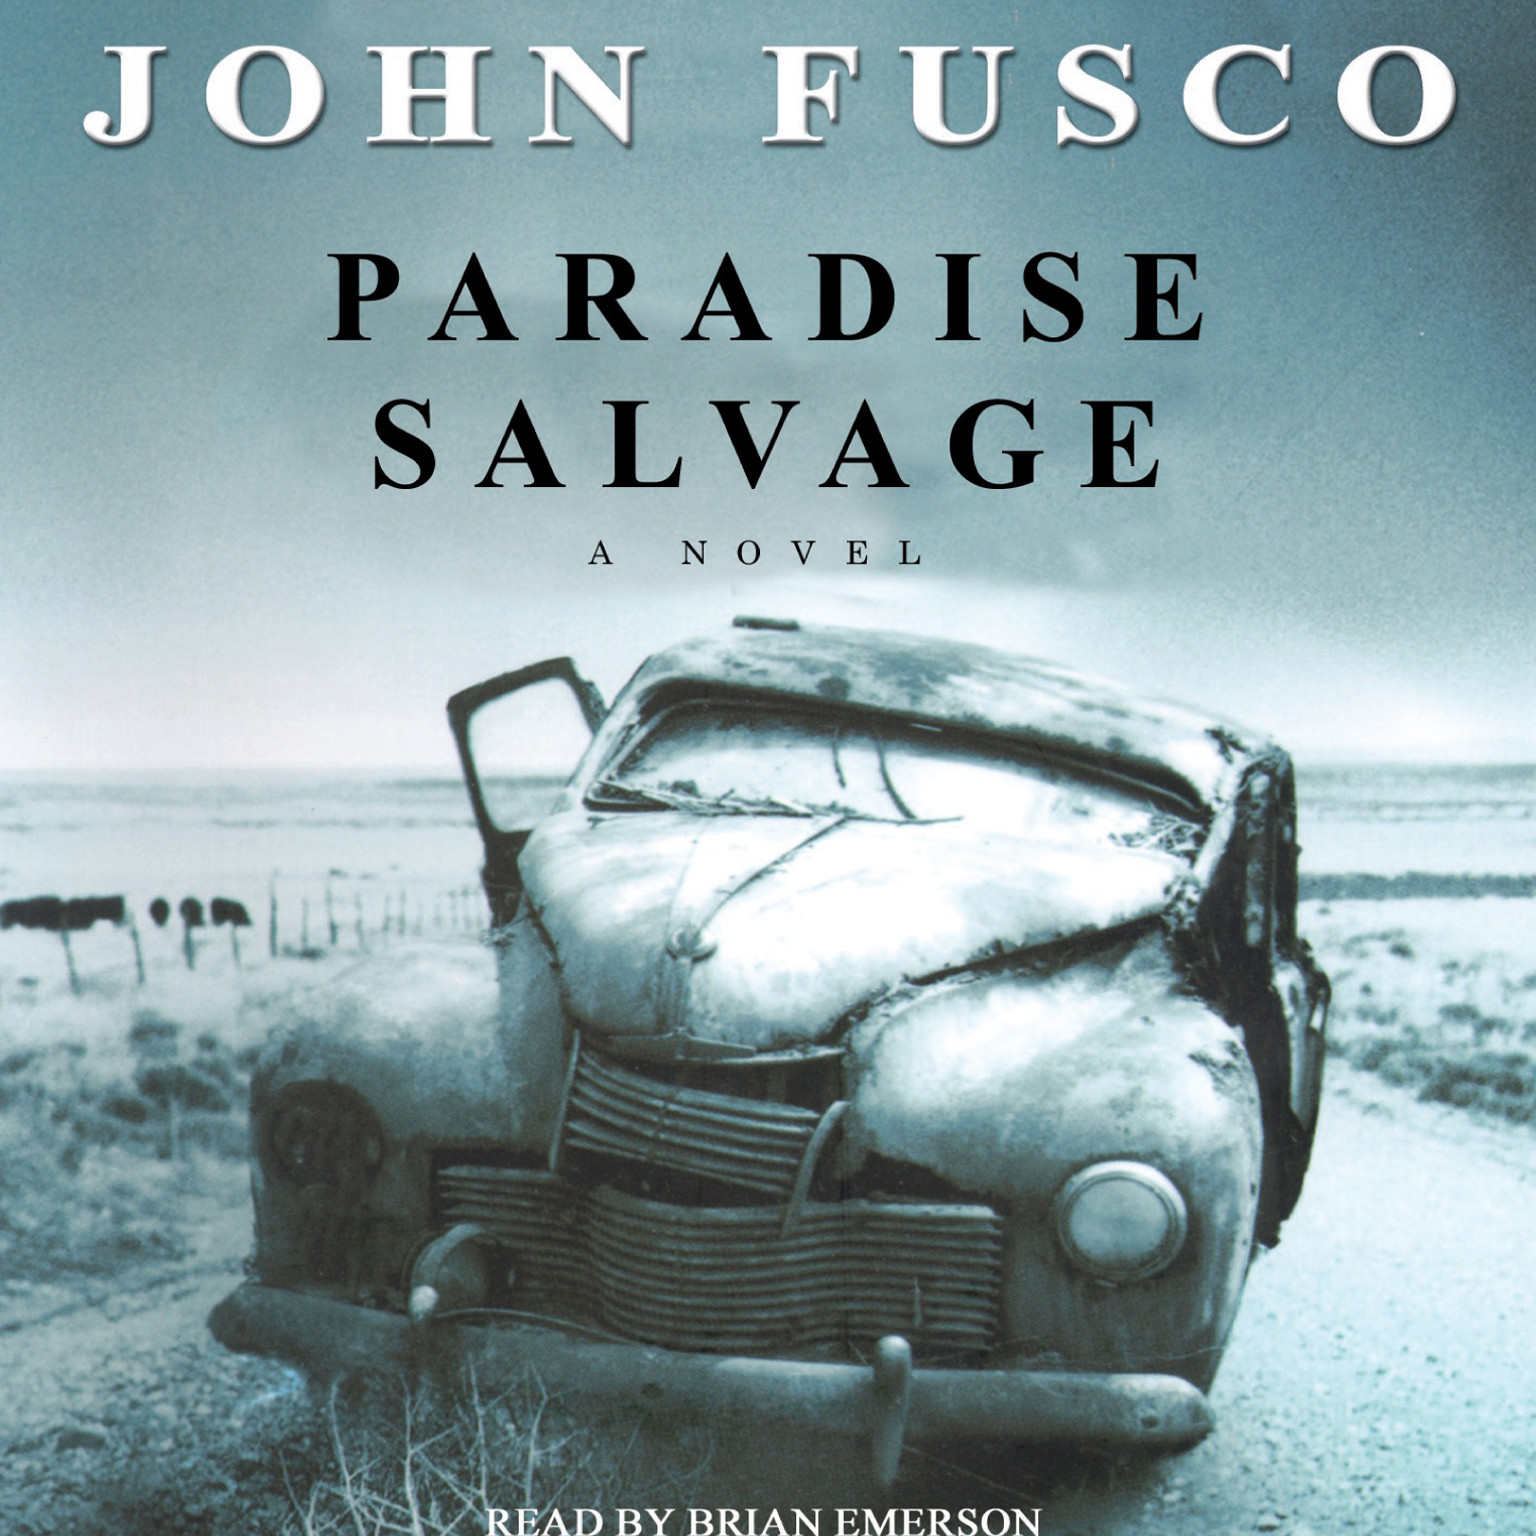 Printable Paradise Salvage Audiobook Cover Art